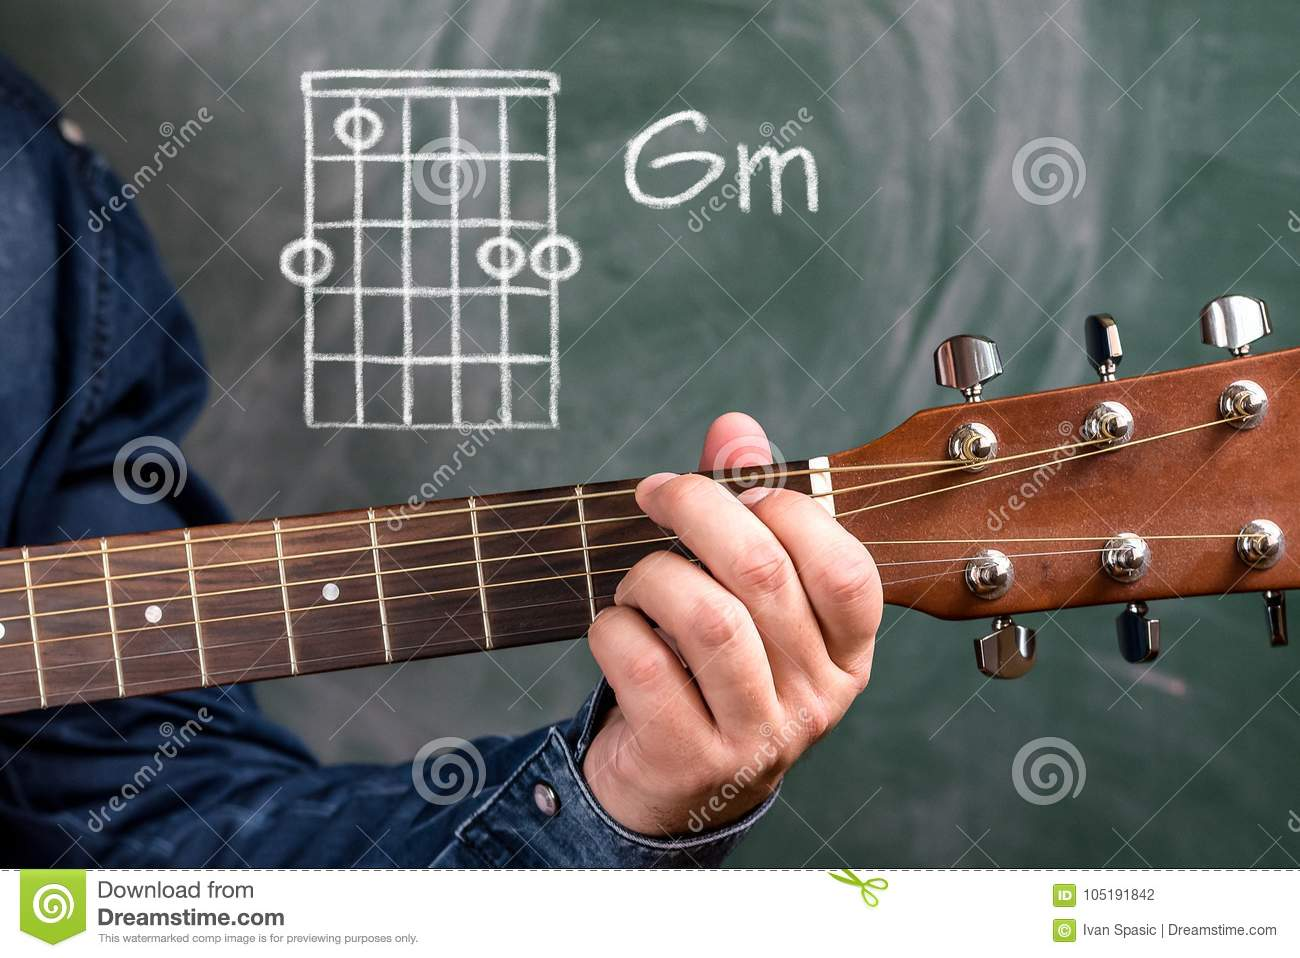 Chord Gm Photos   Free & Royalty Free Stock Photos from Dreamstime